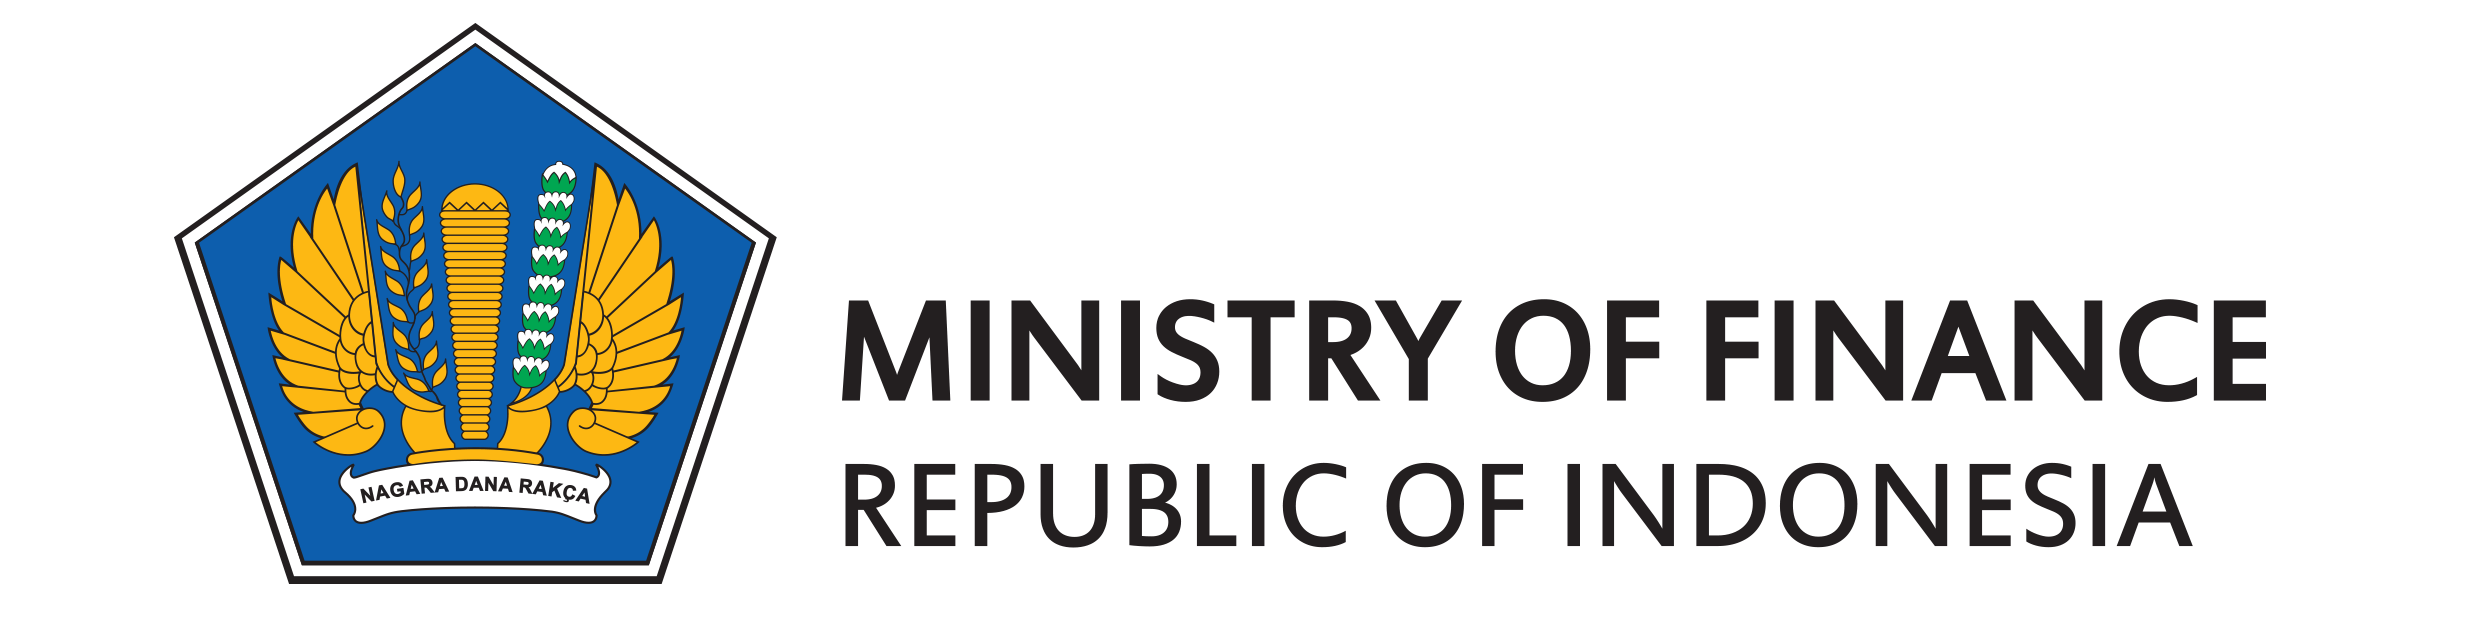 Ministry Of Finance Indonesia.